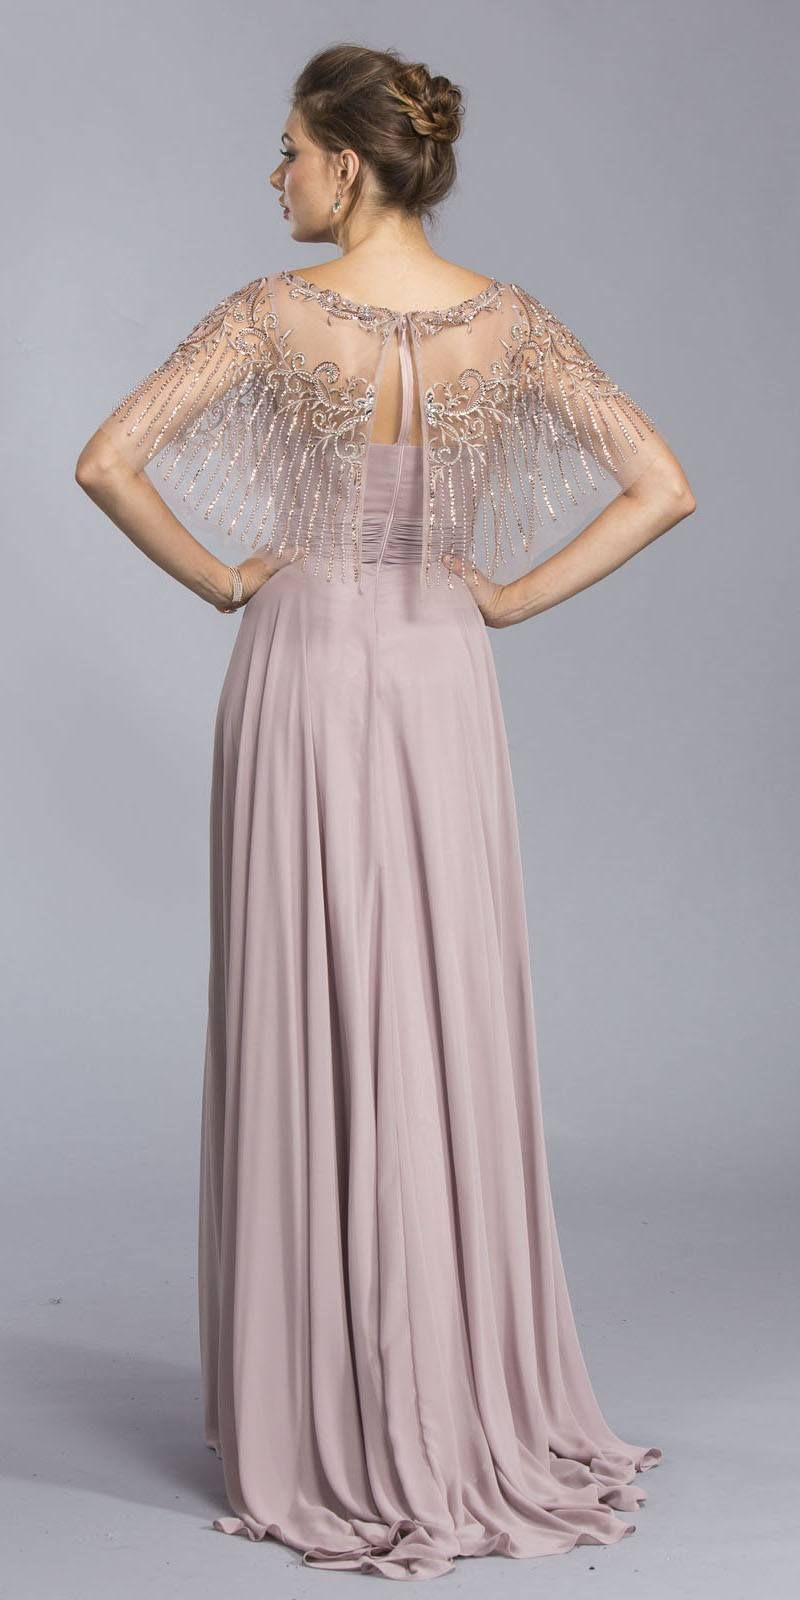 Mauve floor length formal dress with embroidered poncho in